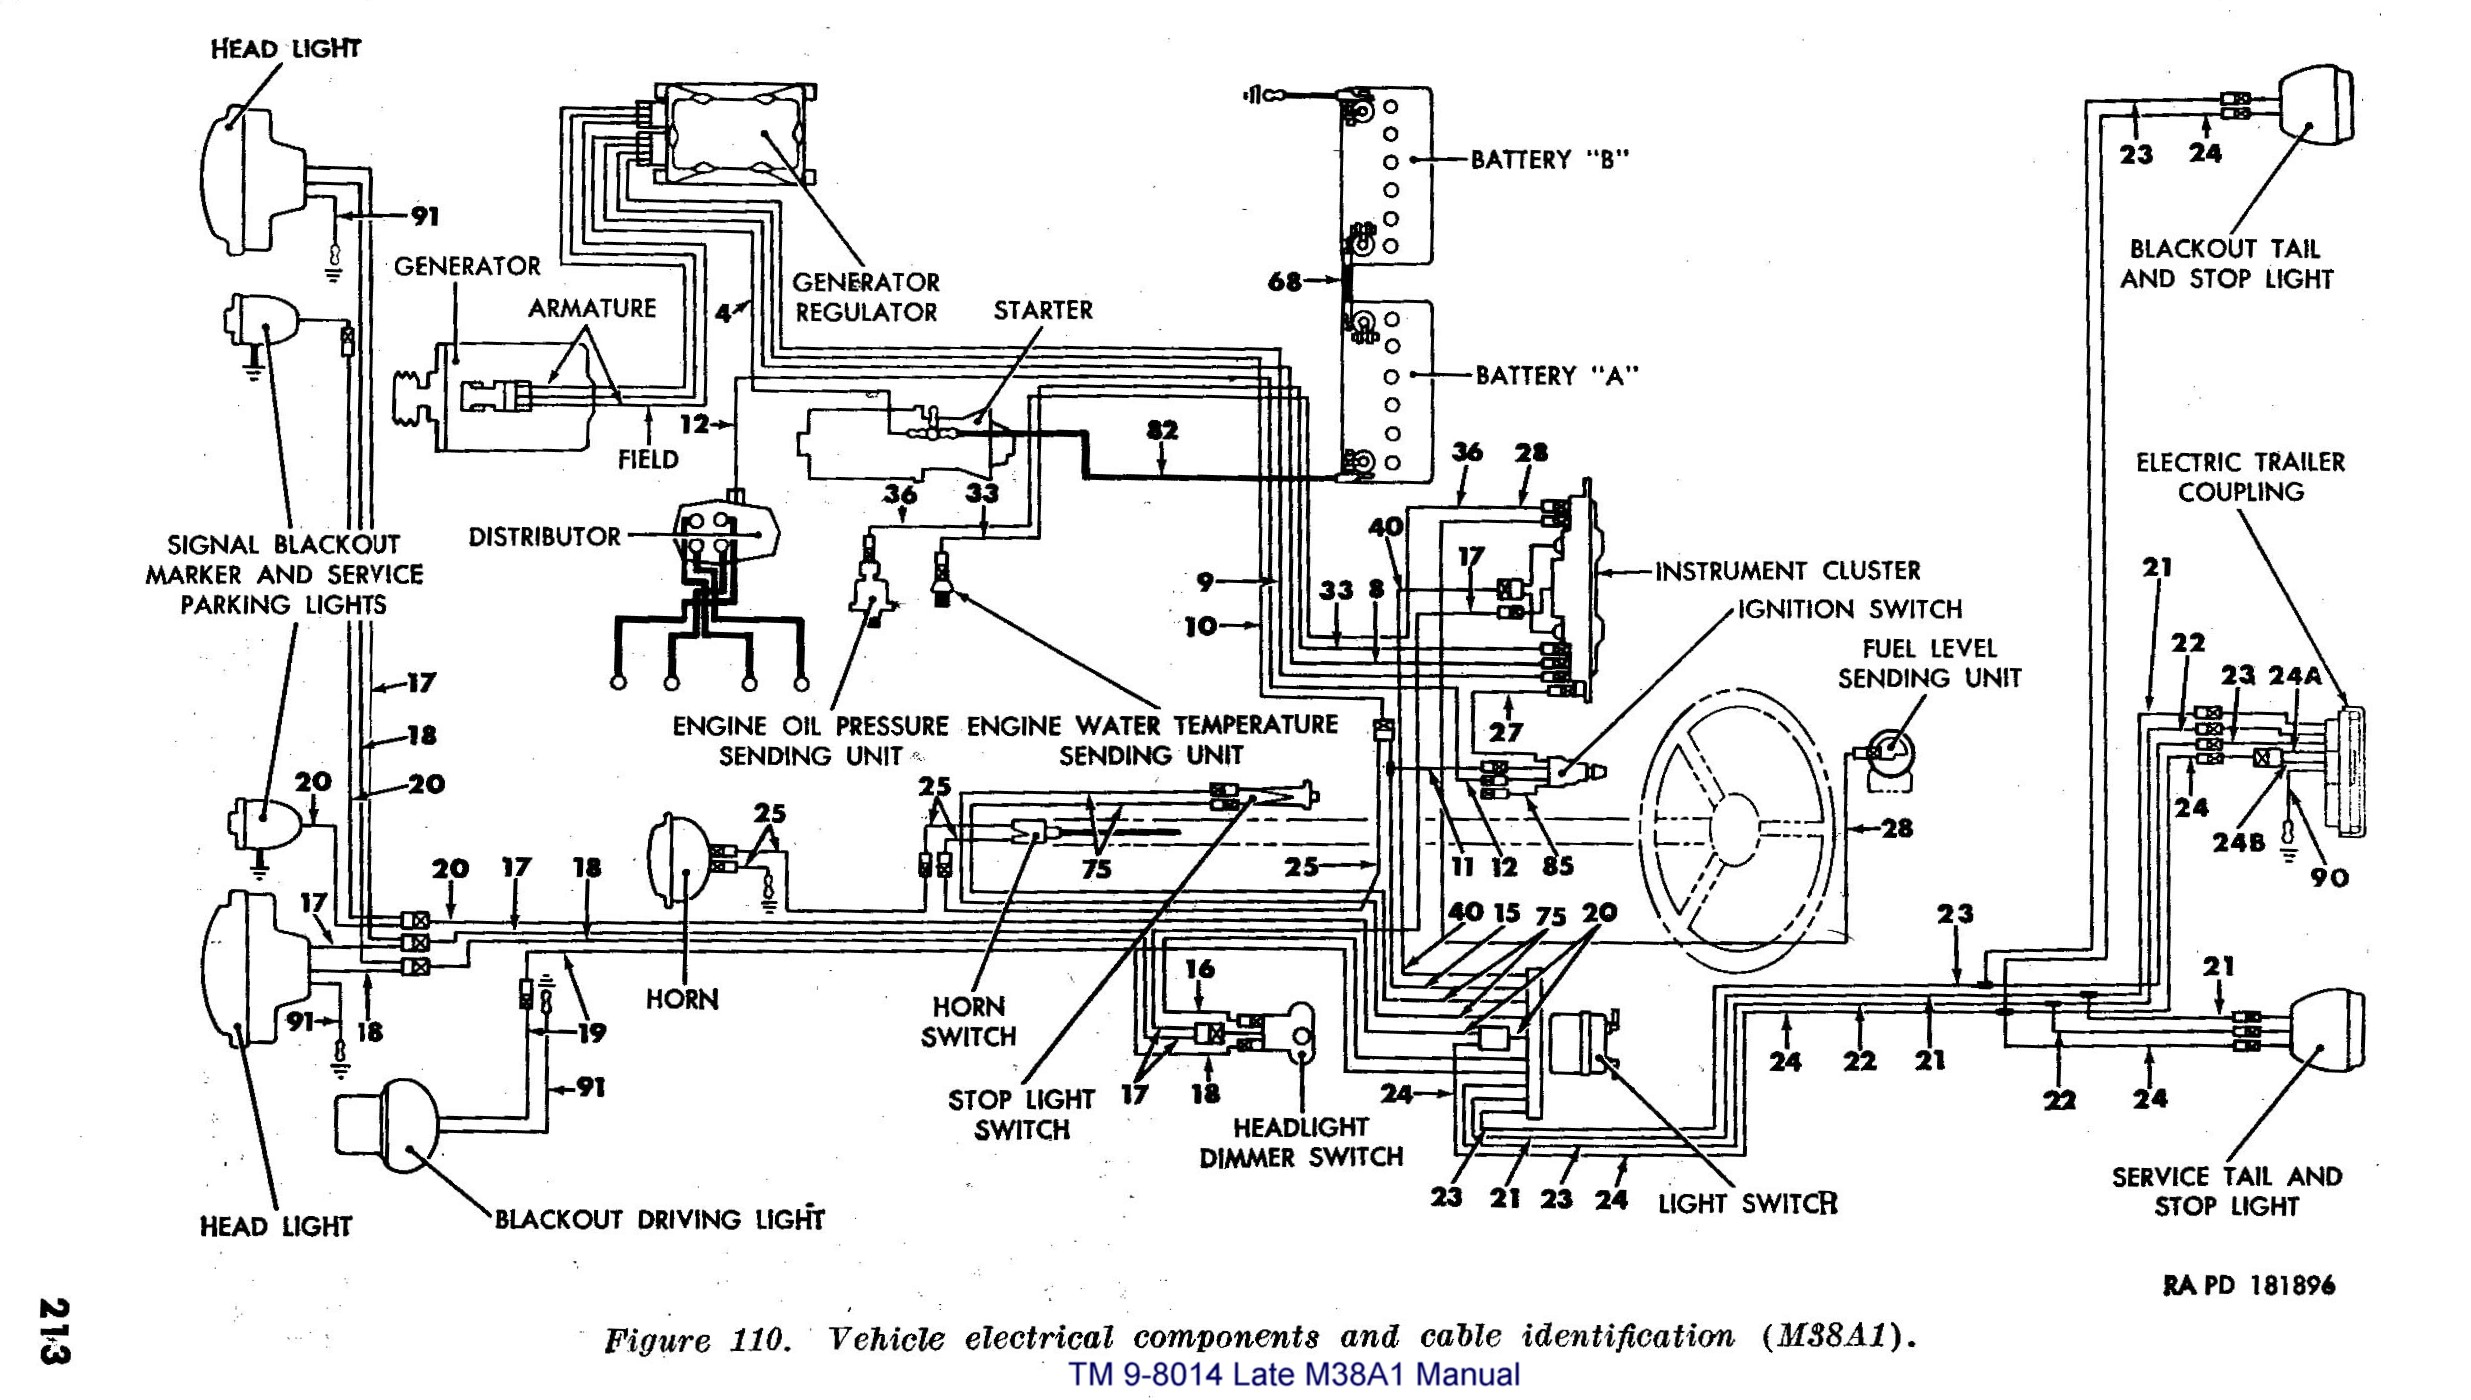 110 Volt Wiring Diagram. Wiring. Wiring Diagrams Instructions